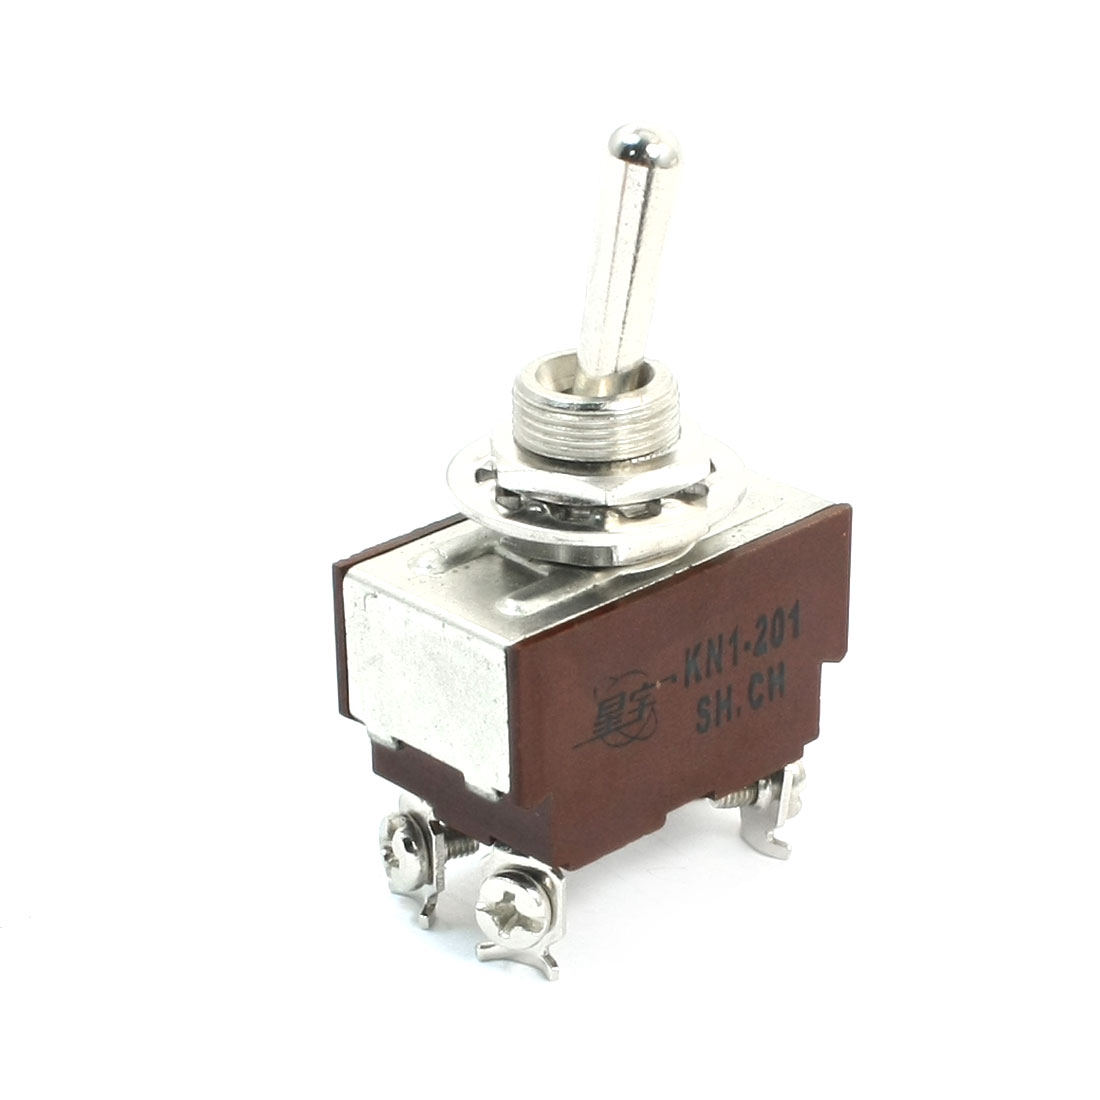 KN1-201 AC 250V 8A DPST 2 Positions Toggle Switch for Switching Light